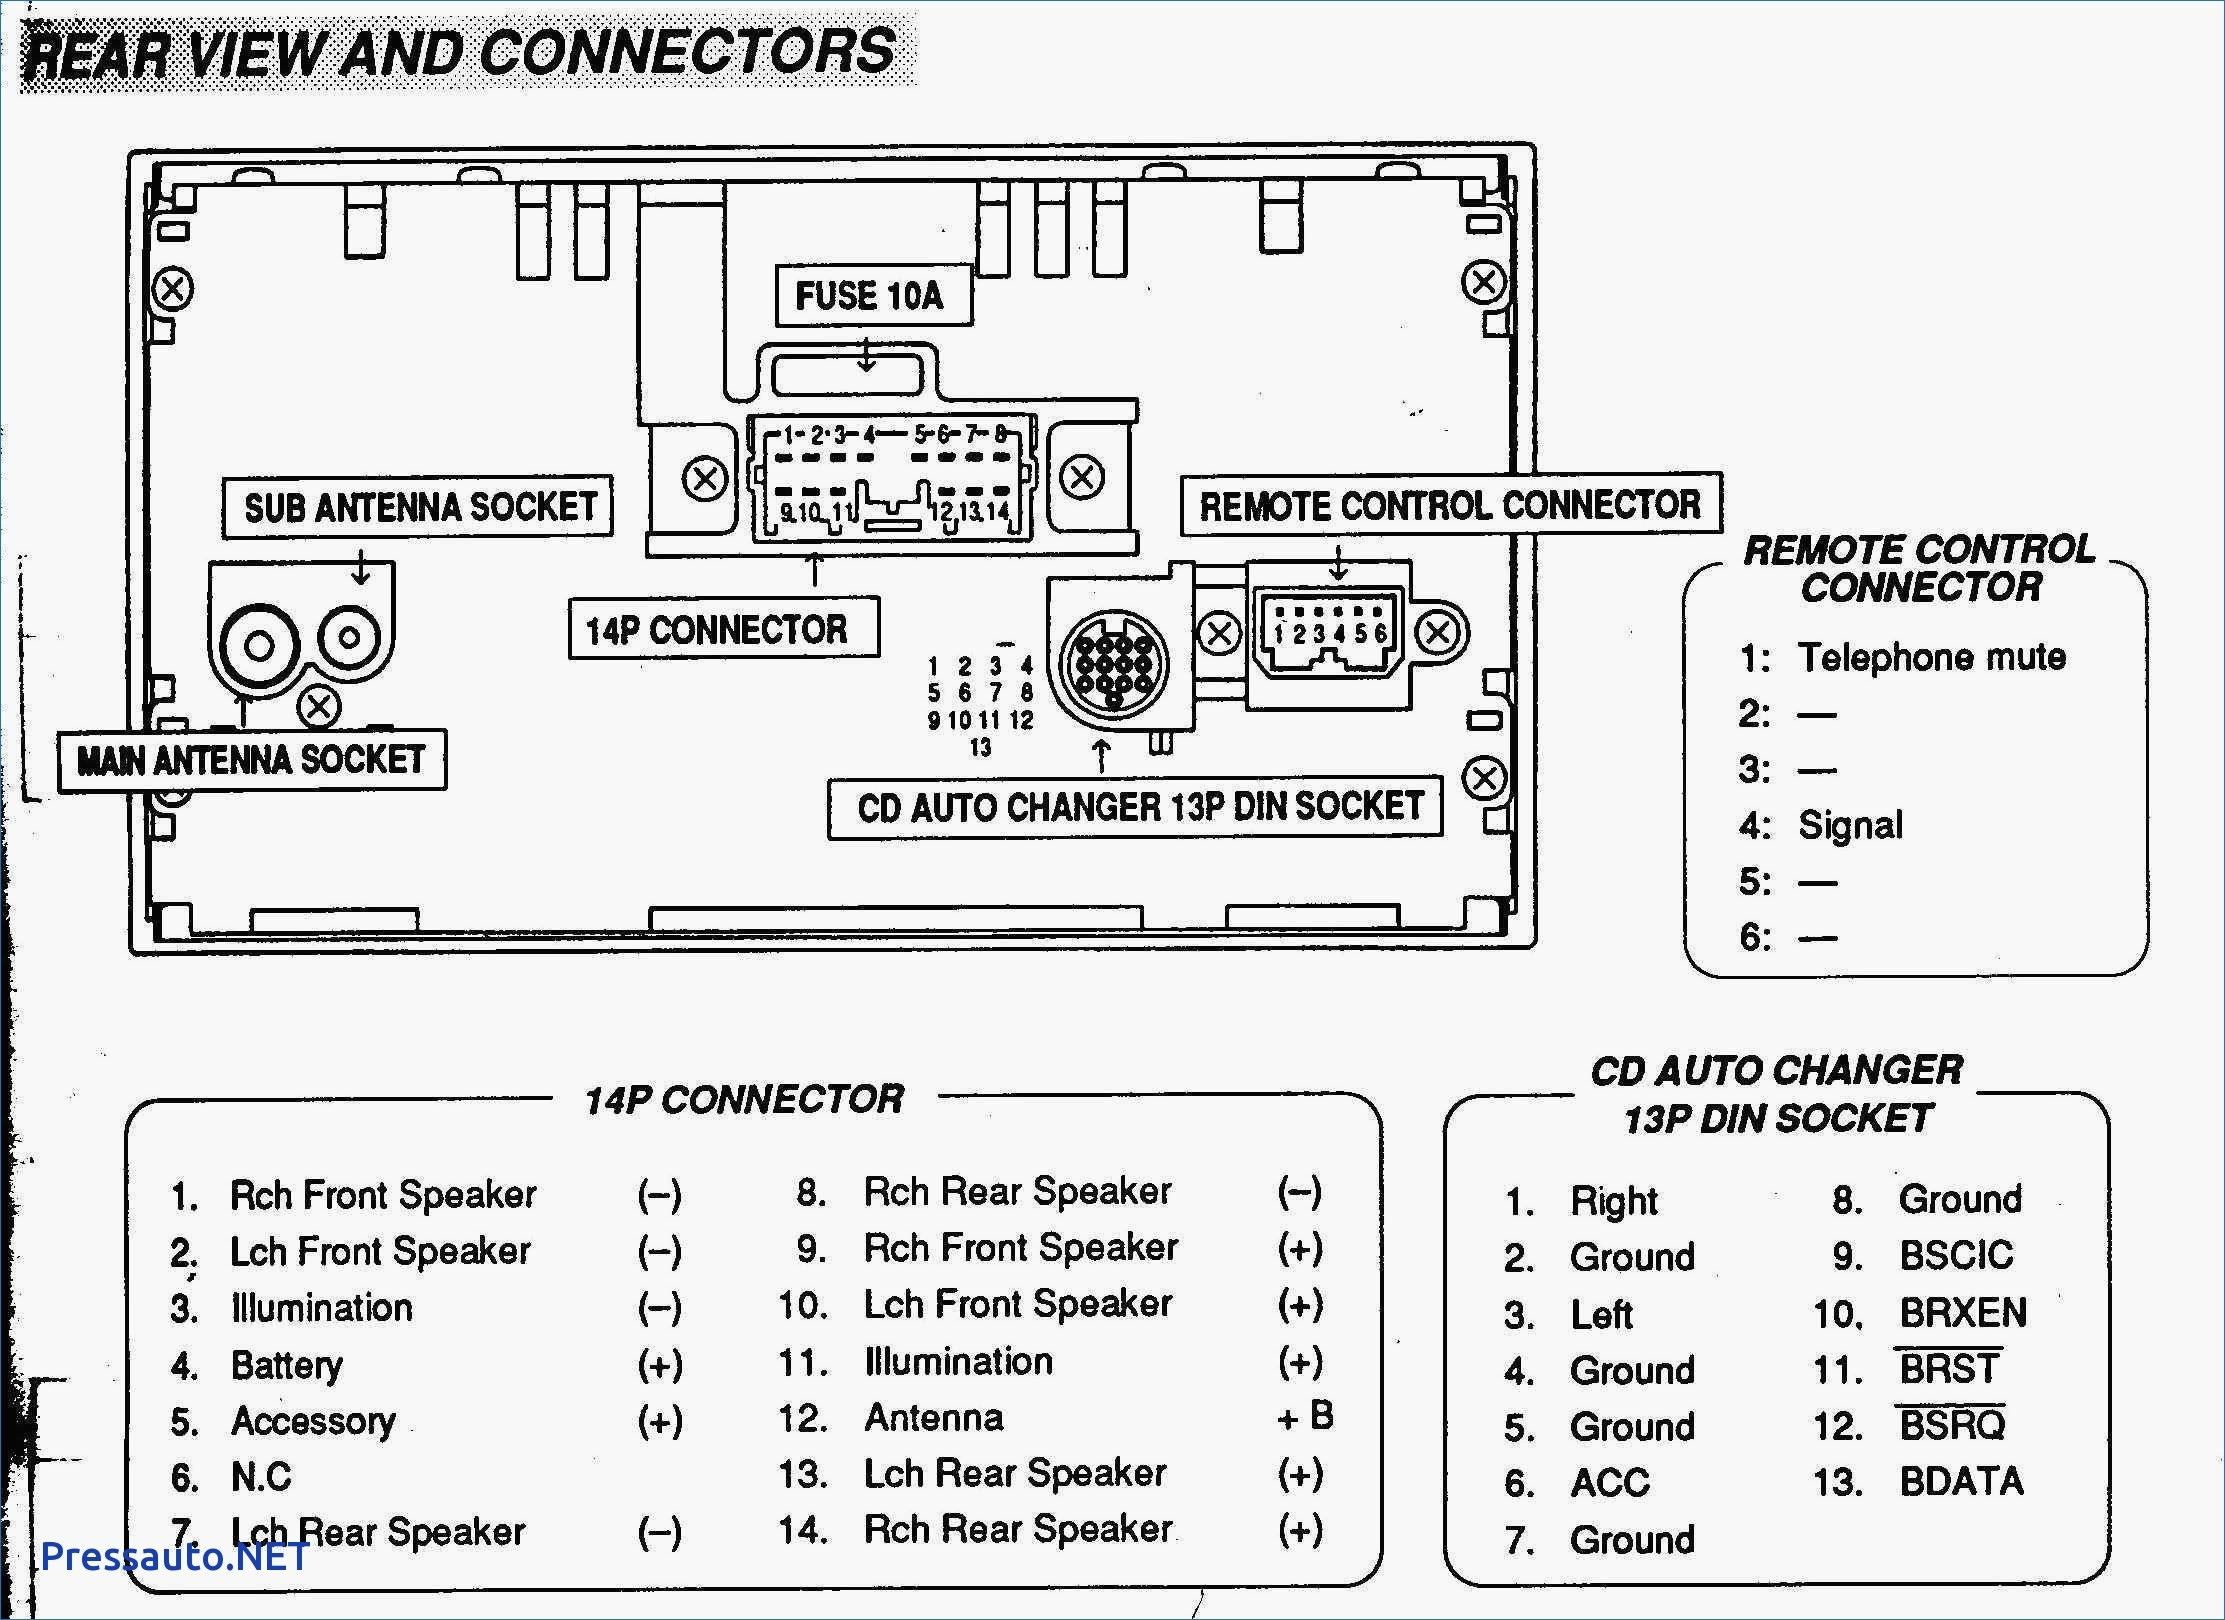 New 2004 Dodge Ram 1500 Infinity Wiring Diagram Diagram Diagramsample Diagramtemplate Wiringdiagram Diag Mitsubishi Cars Mitsubishi Electric Car Jetta Car